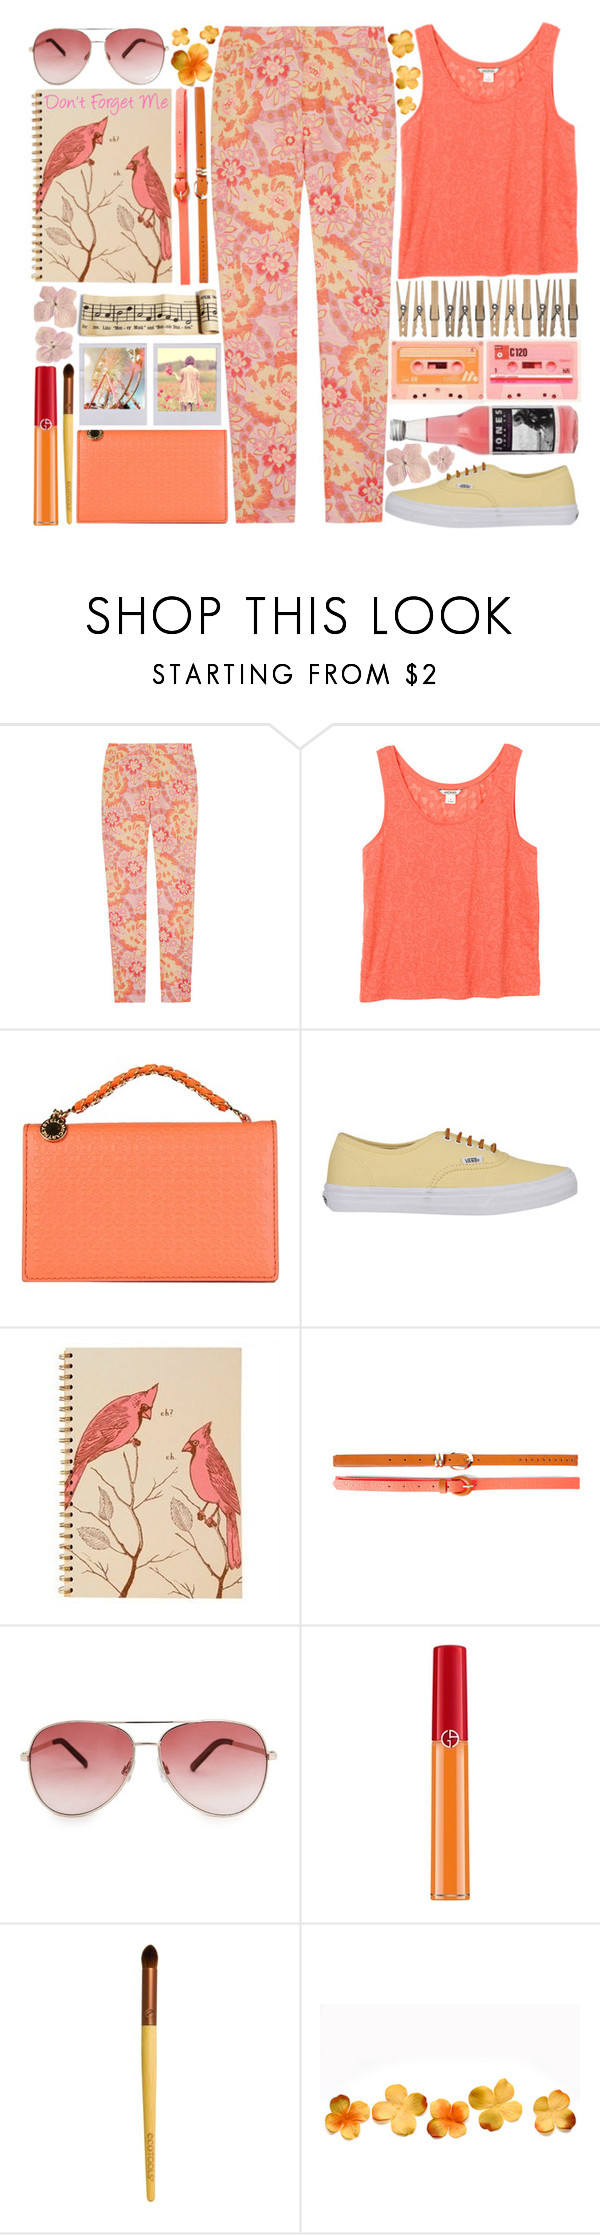 """Don't Forget Me"" by heartart ❤ liked on Polyvore featuring Erdem, Monki, STELLA McCARTNEY, Vans, Polaroid, Pull&Bear, MANGO, Giorgio Armani and EcoTools"